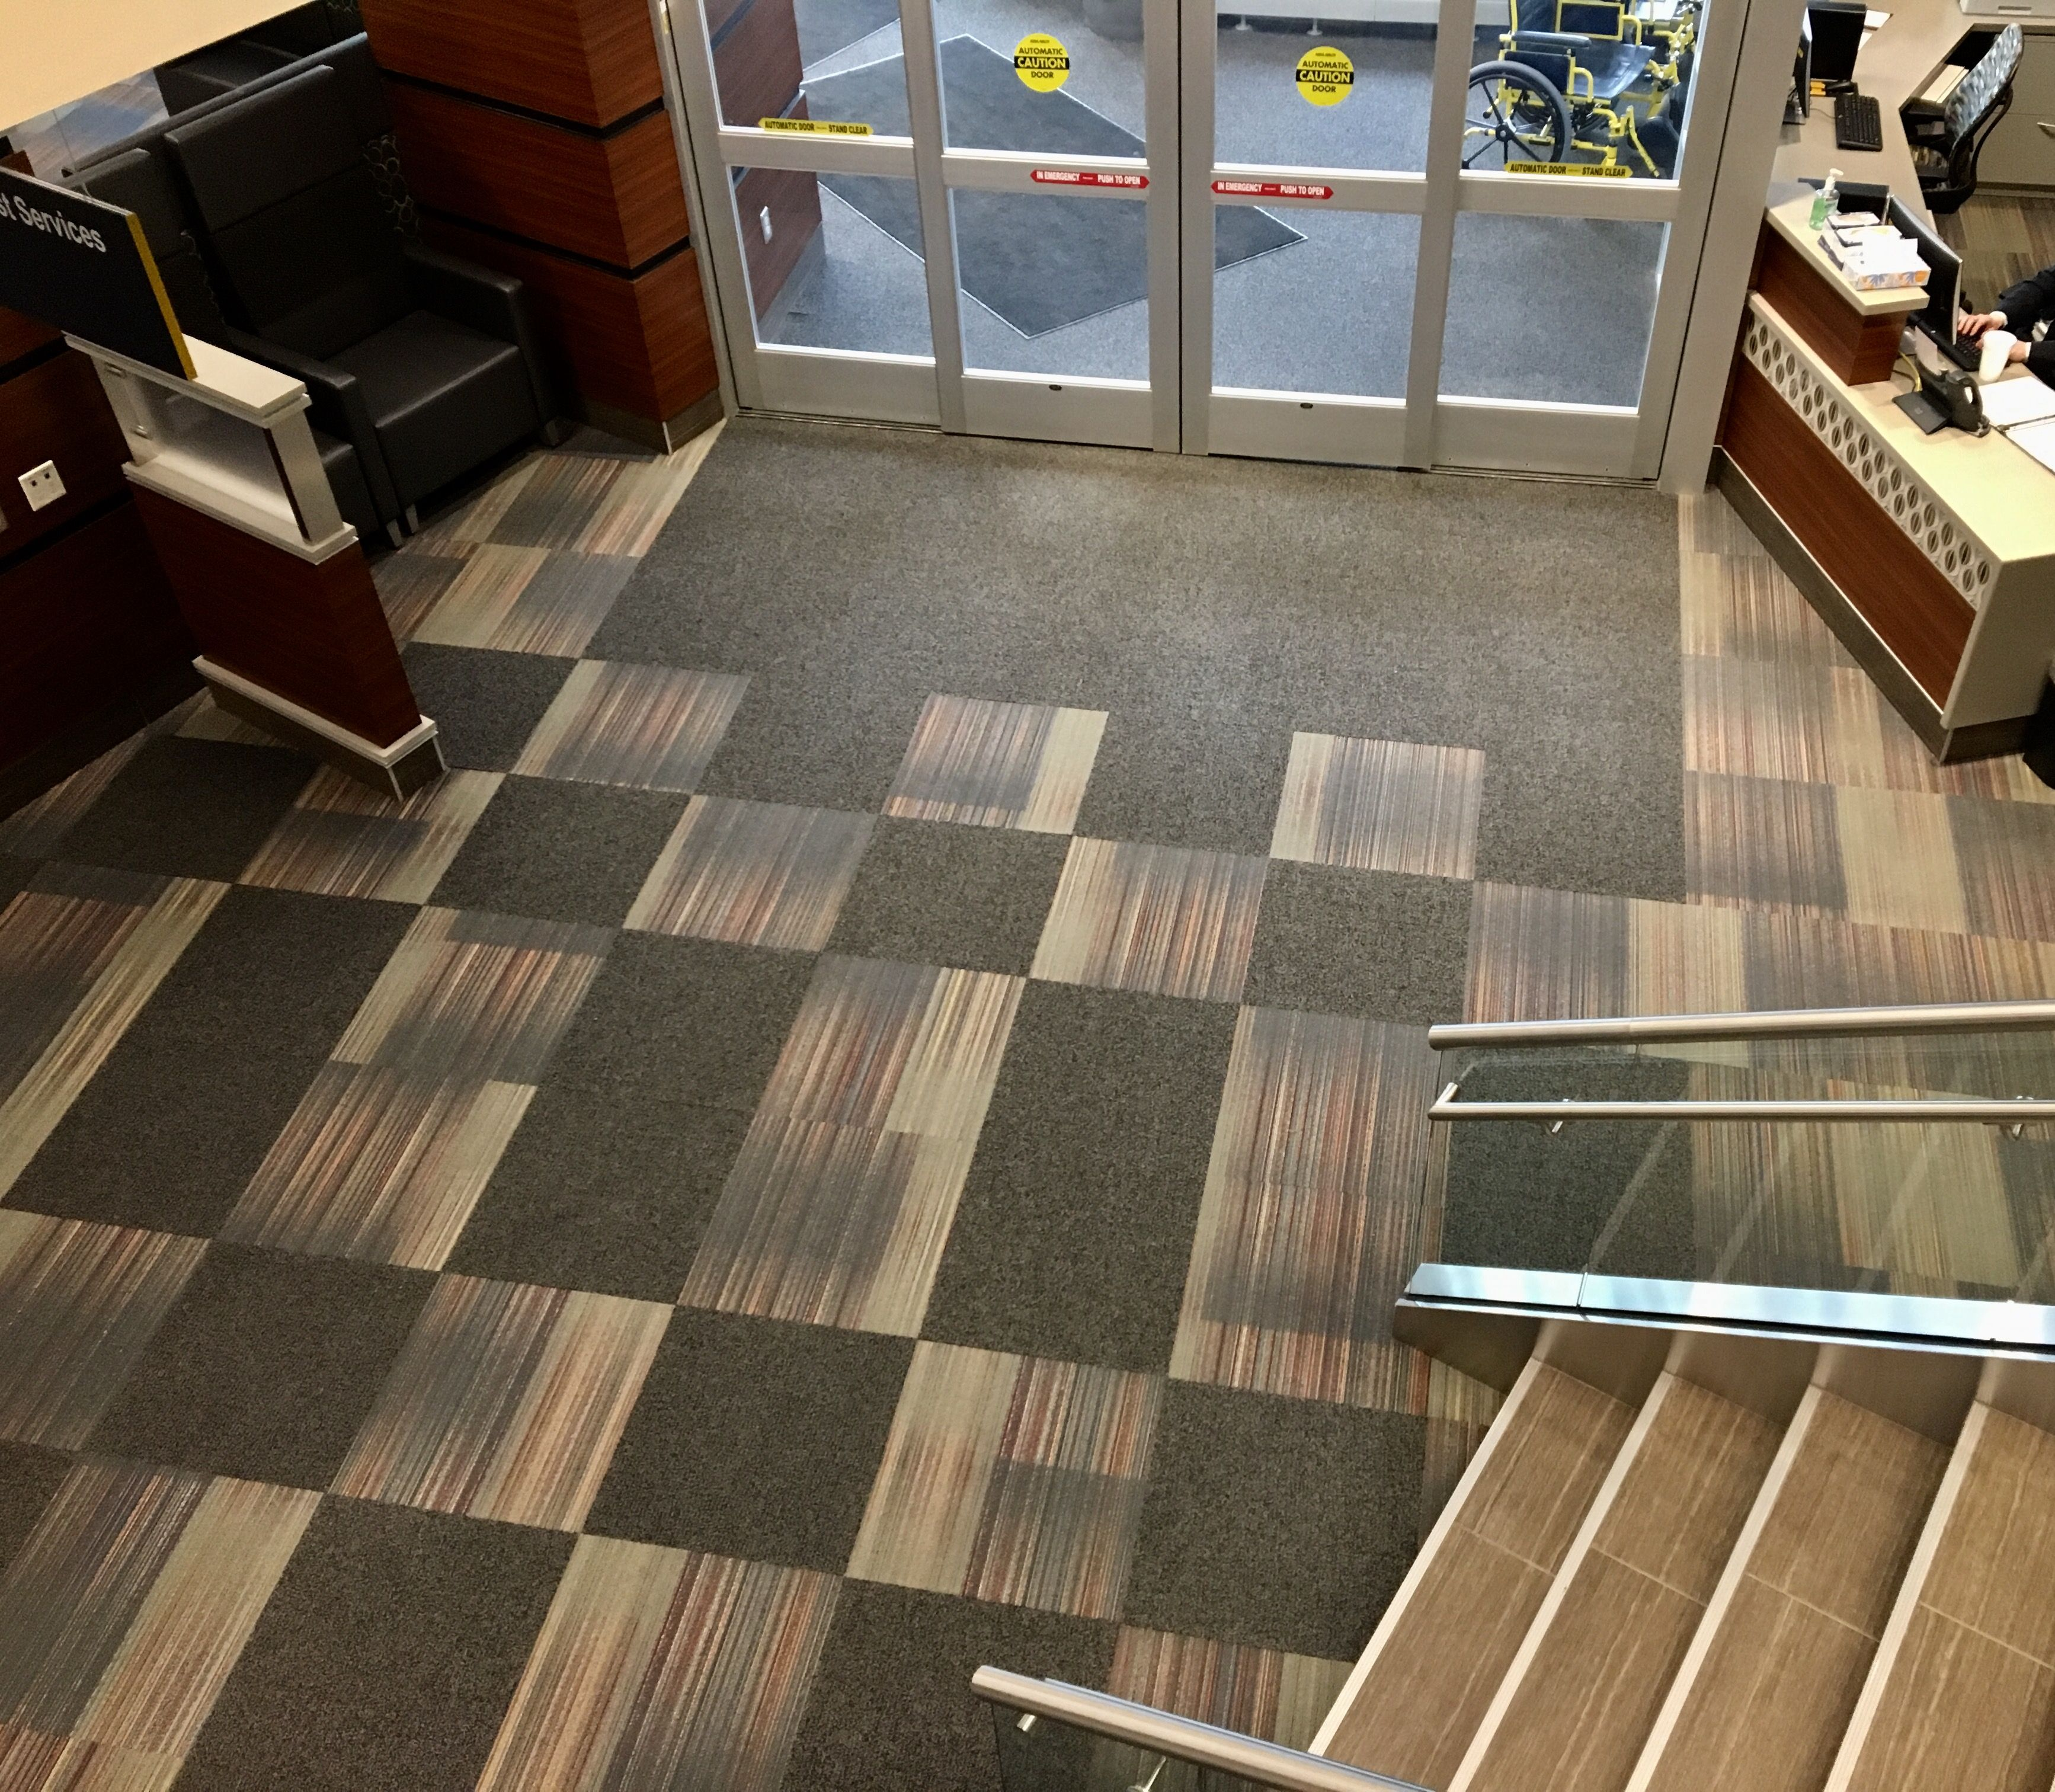 access walk off tiles 24 x 24 with